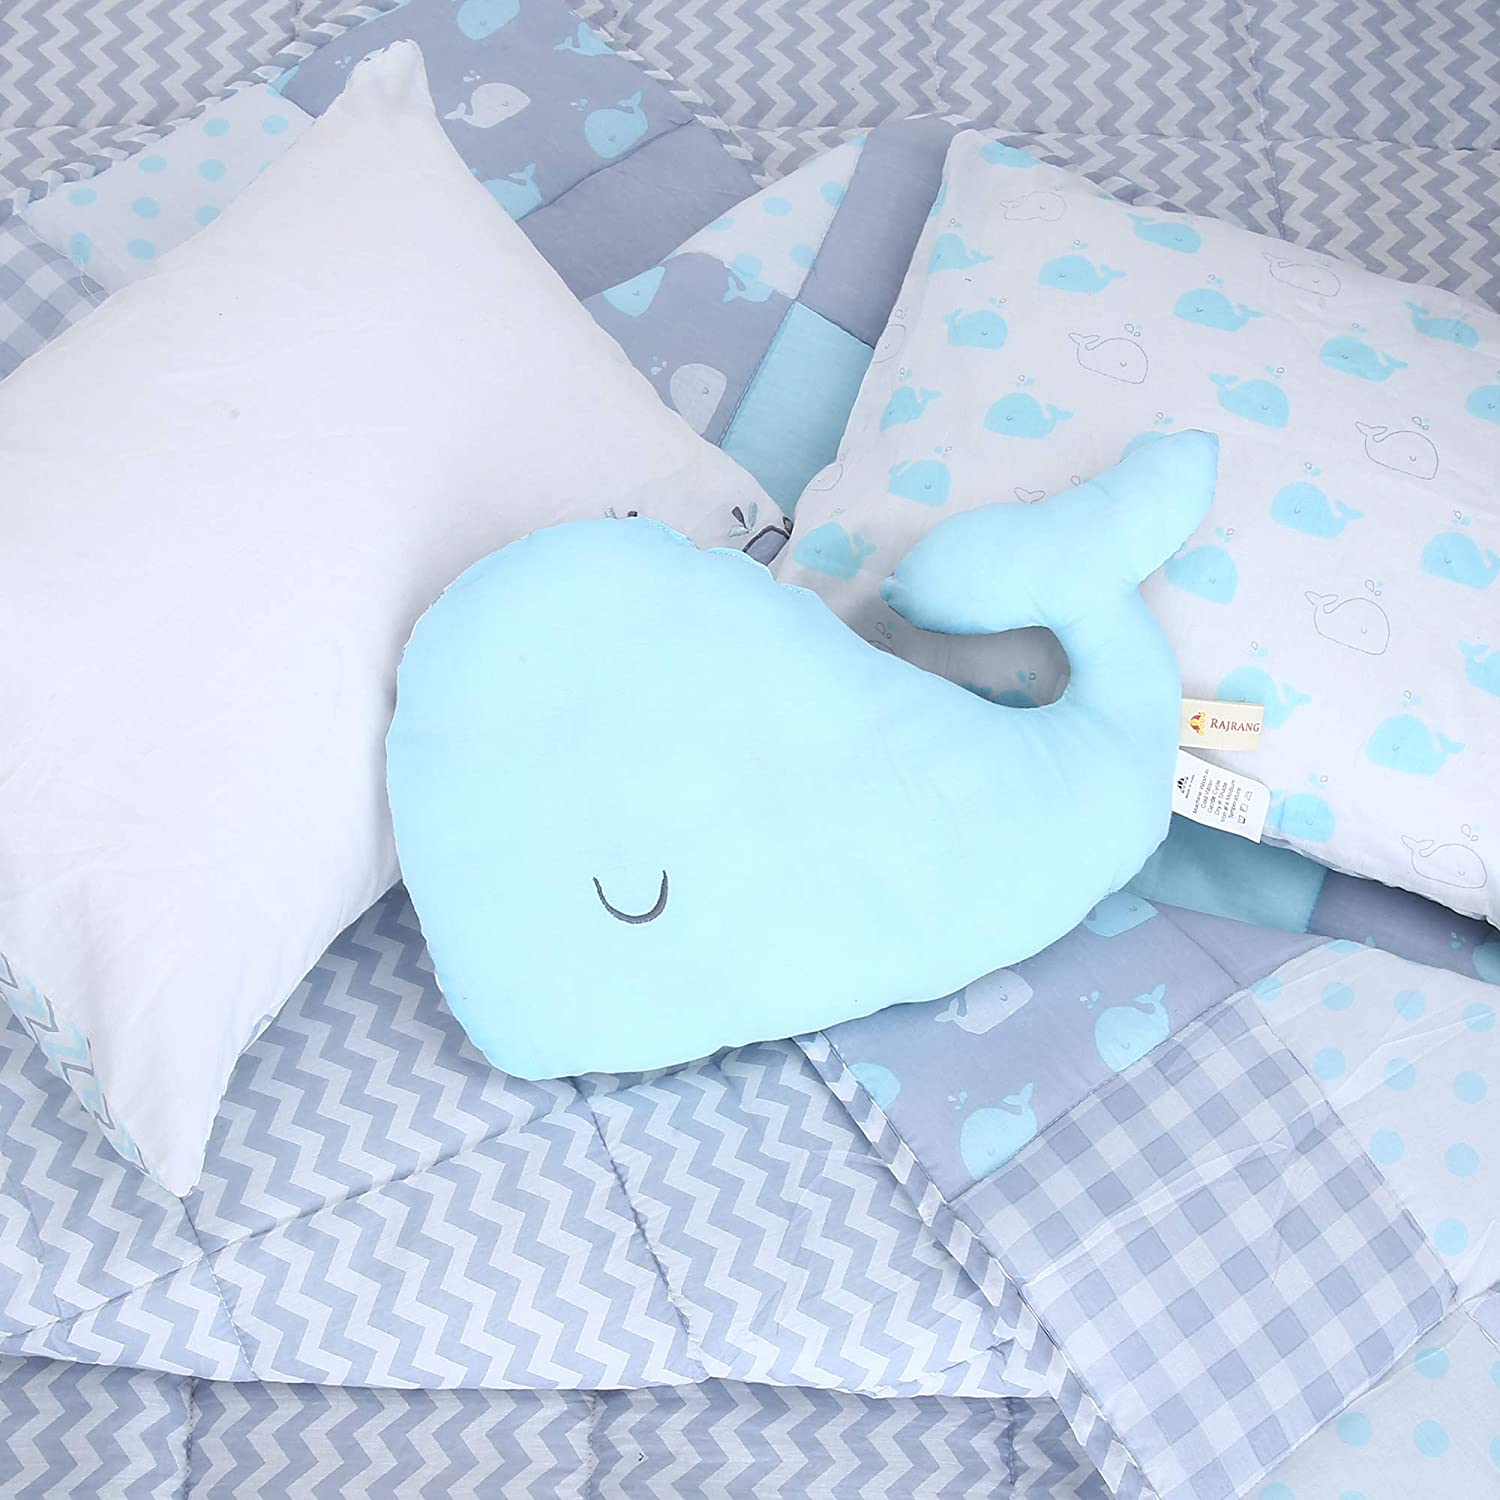 Neck Support for Newborn Boys and Girls Whale Pattern Cotton Stuffed Crib Pillow Baby Shower Gift 15x9x2.5 Inch RAJRANG BRINGING RAJASTHAN TO YOU Head Shape Pillows Blue